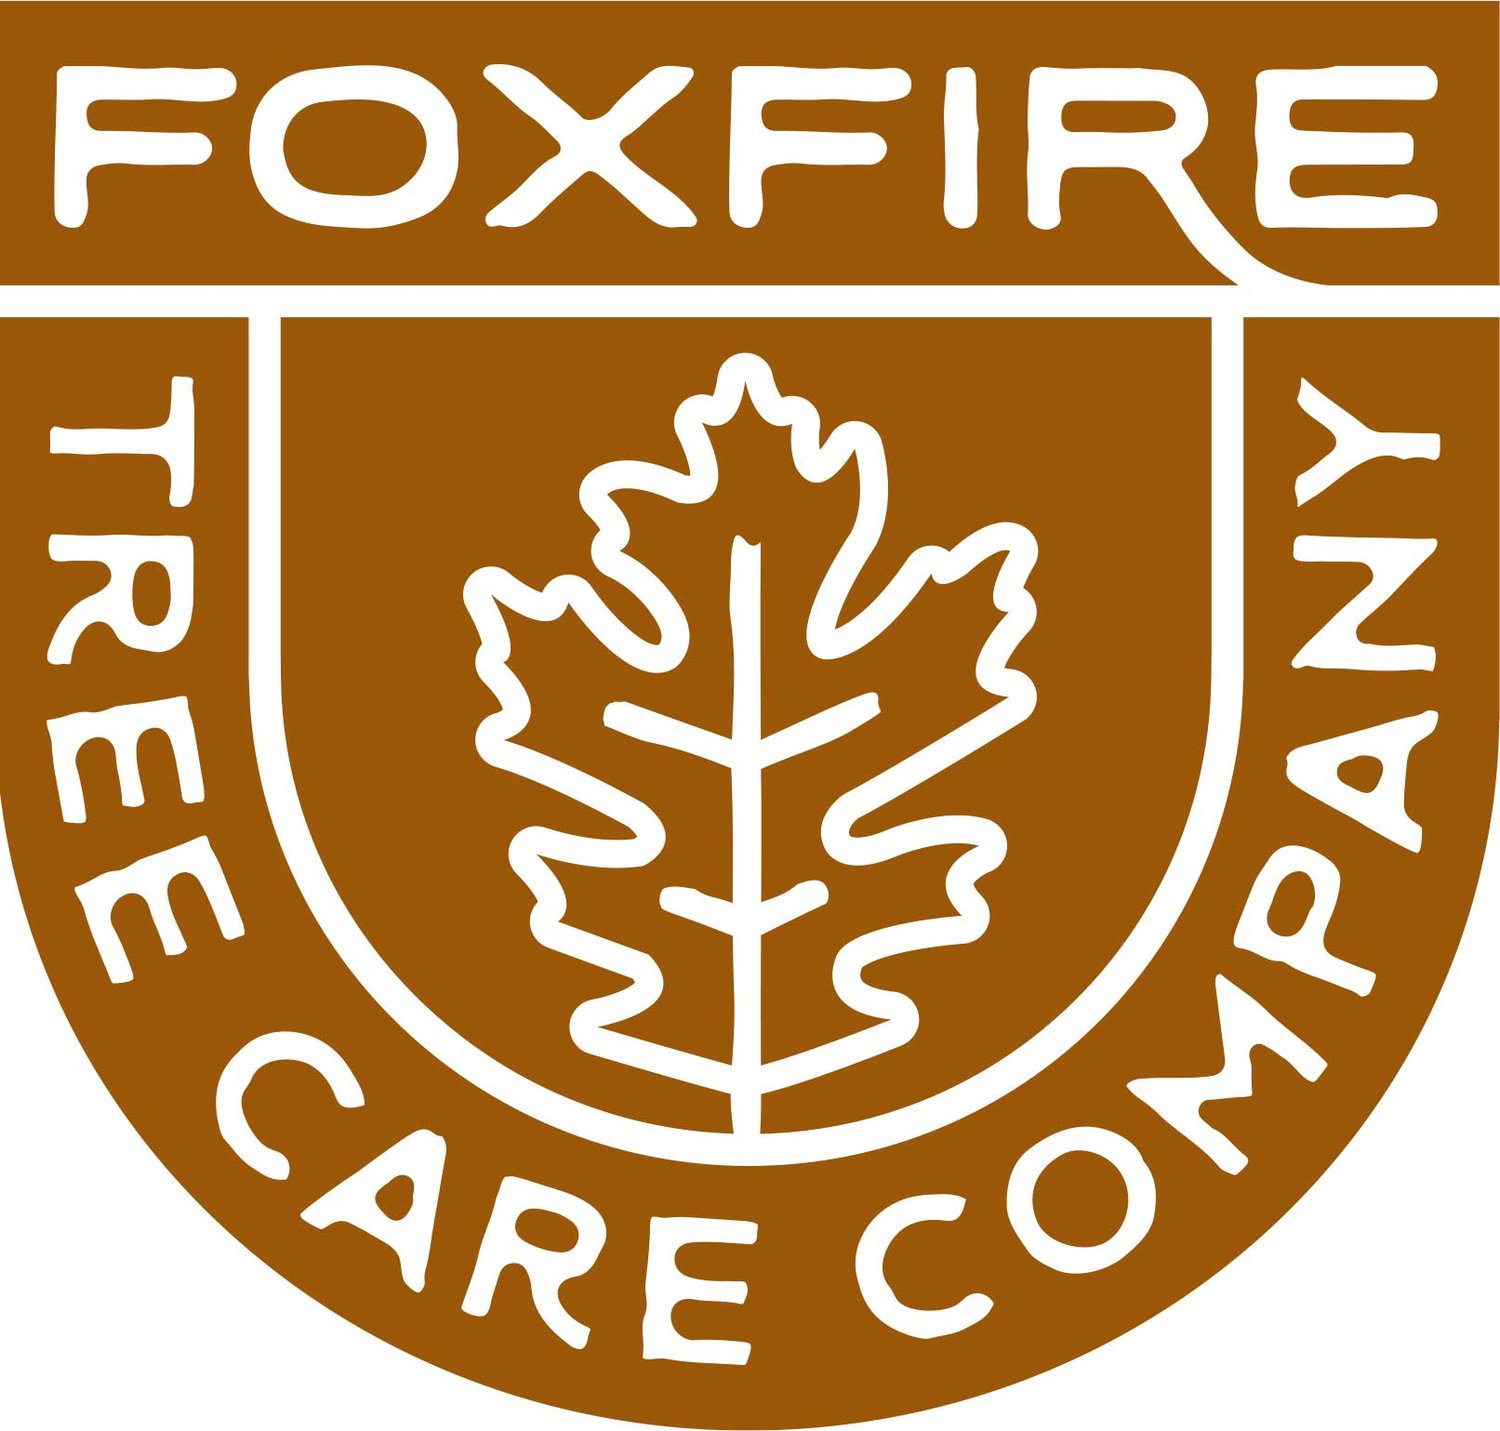 Foxfire Tree Care - Arborist in Montpelier, Barre, and Plainfield